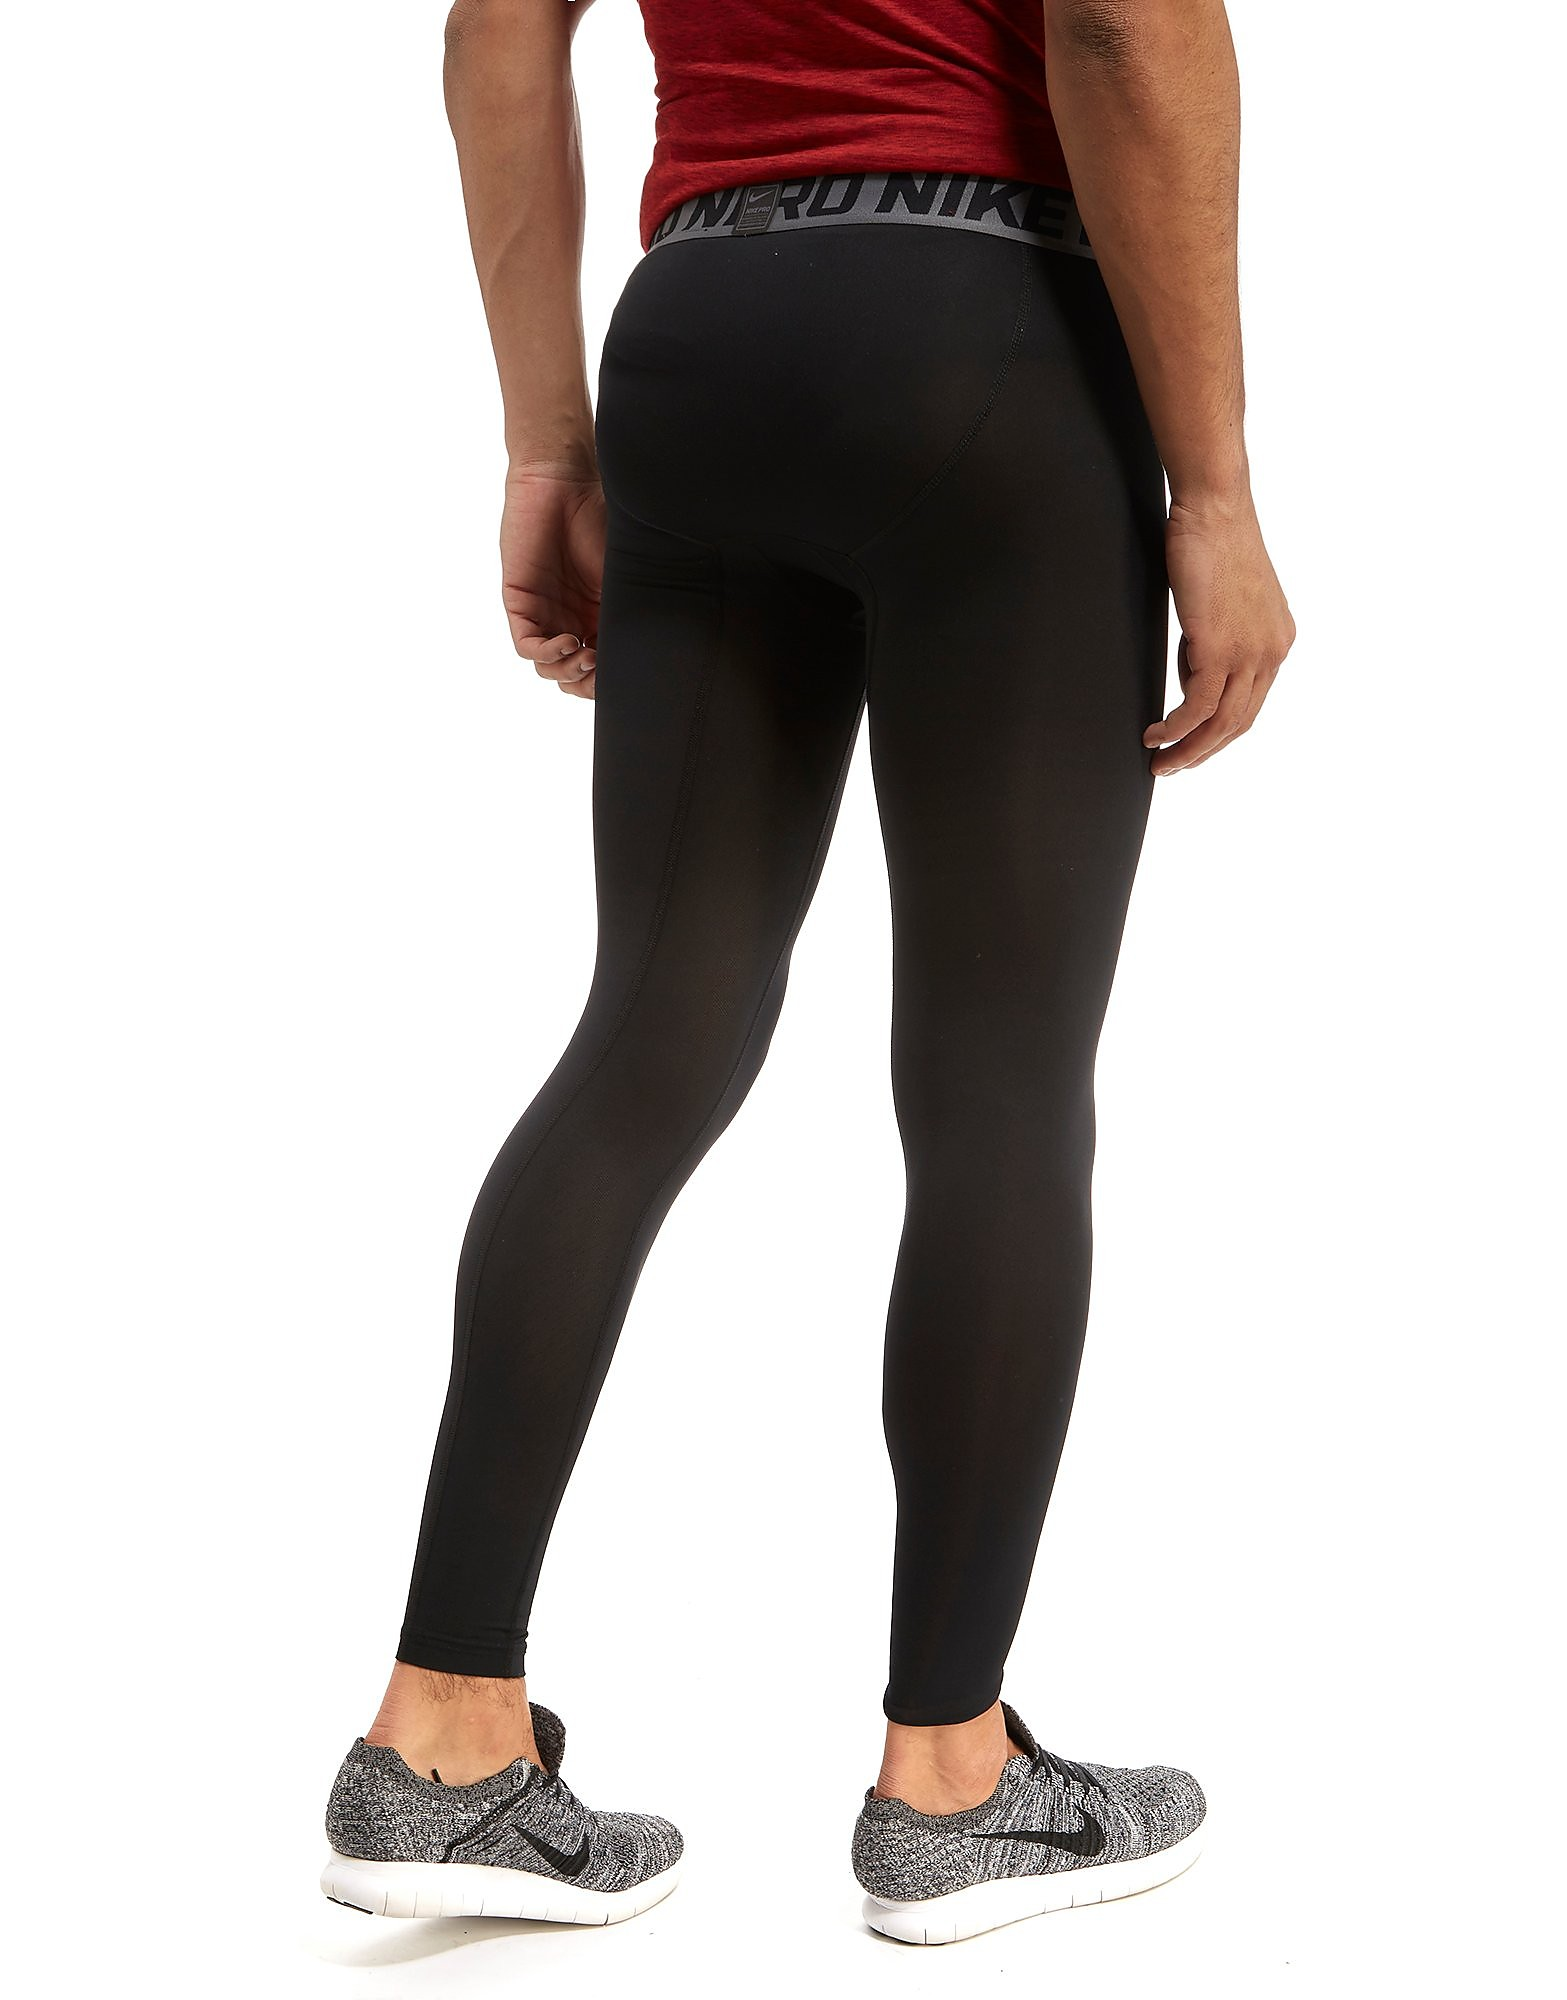 Nike Compression Tights